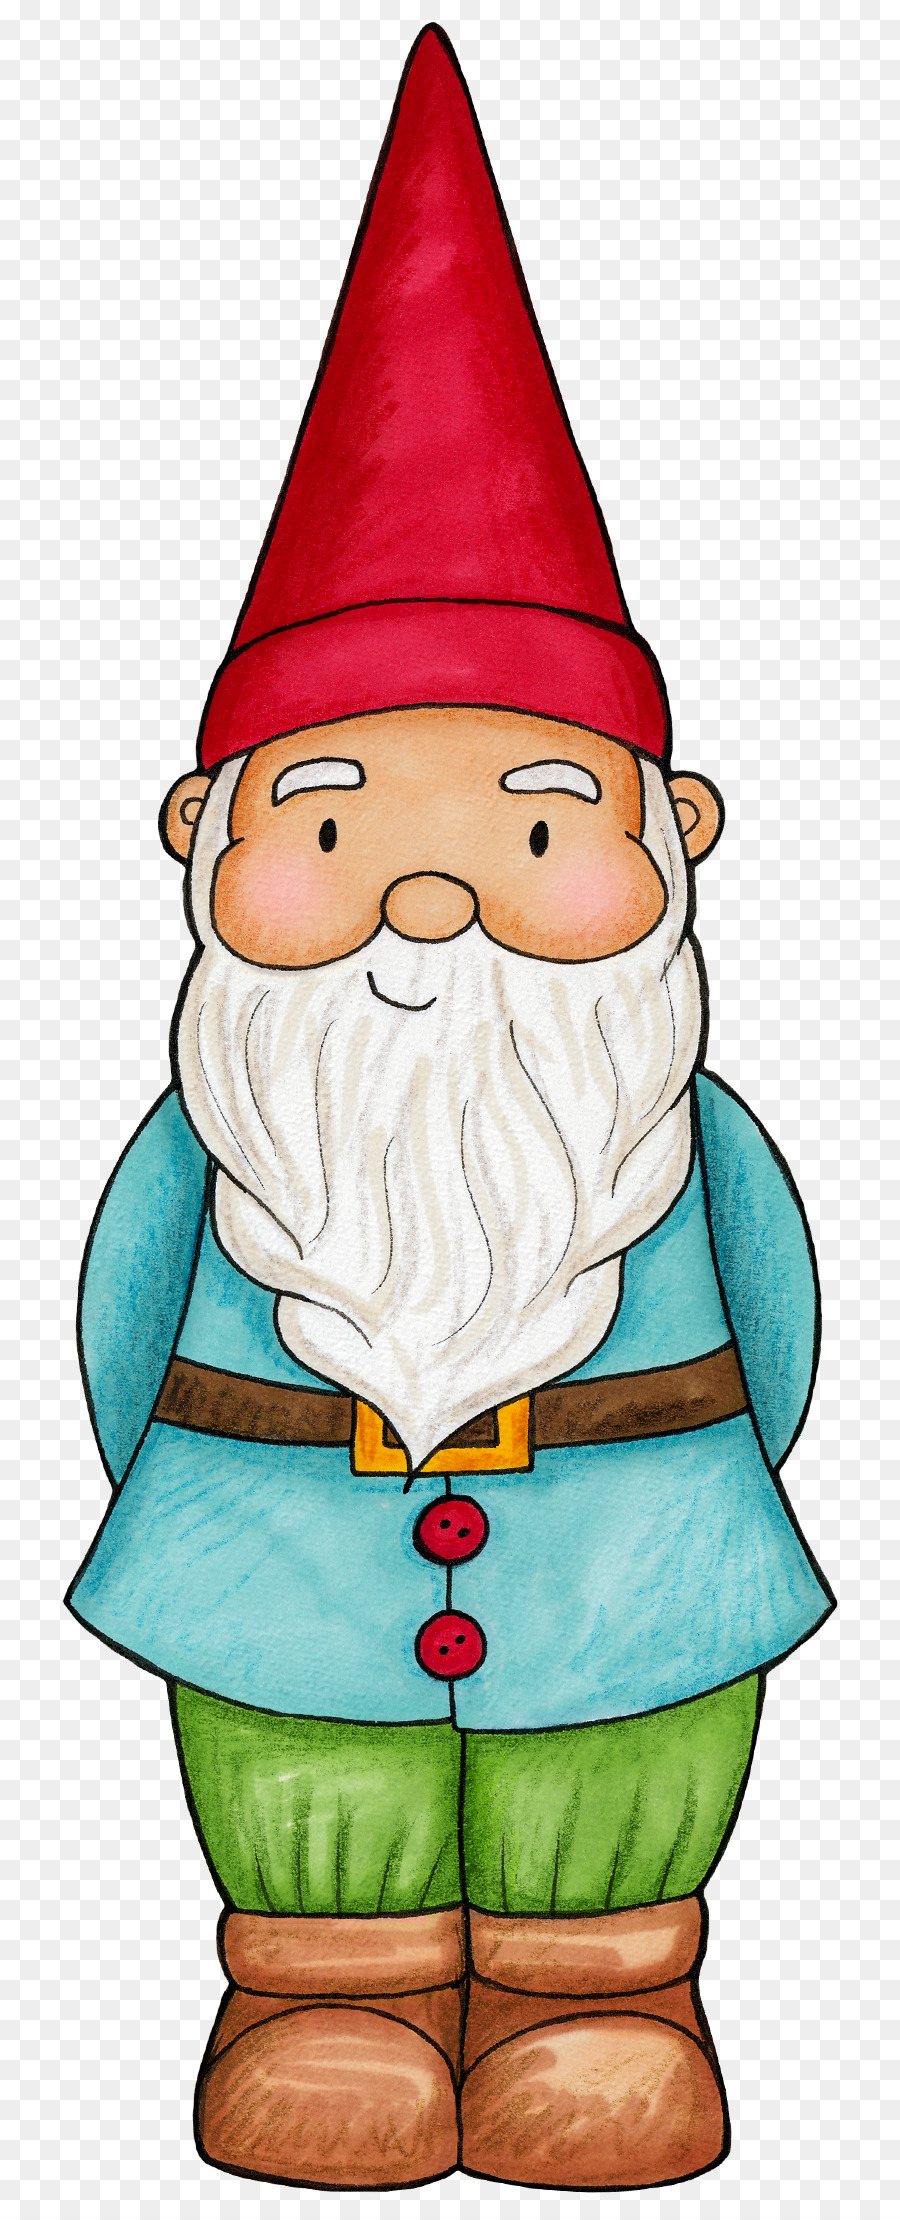 garden gnome clip art gnome png download 792 2215 free rh kisspng com garden gnome clipart garden gnome clipart